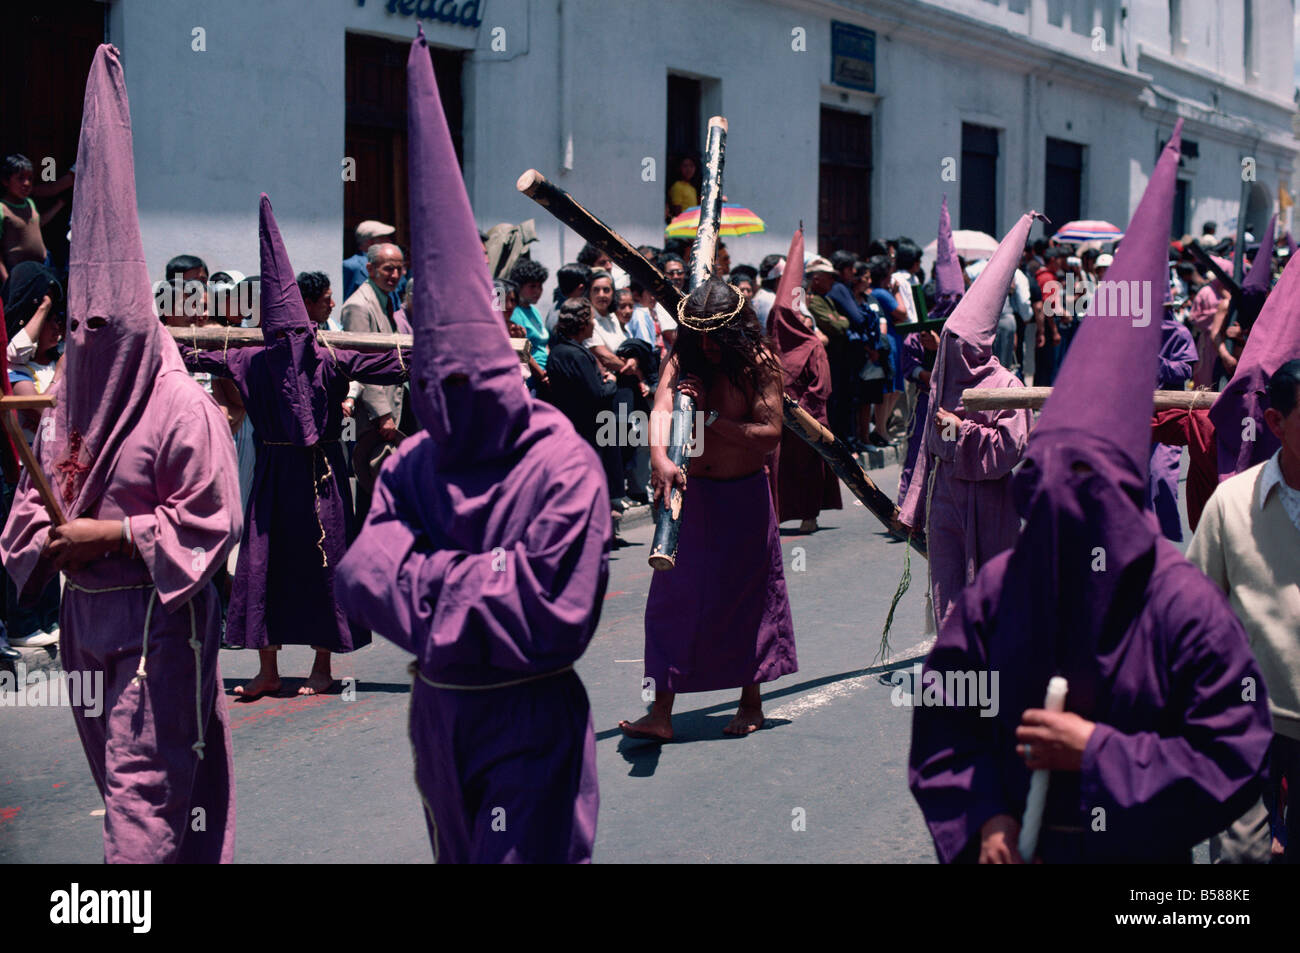 Penitents in Easter parade, Quito, Ecuador, South America - Stock Image